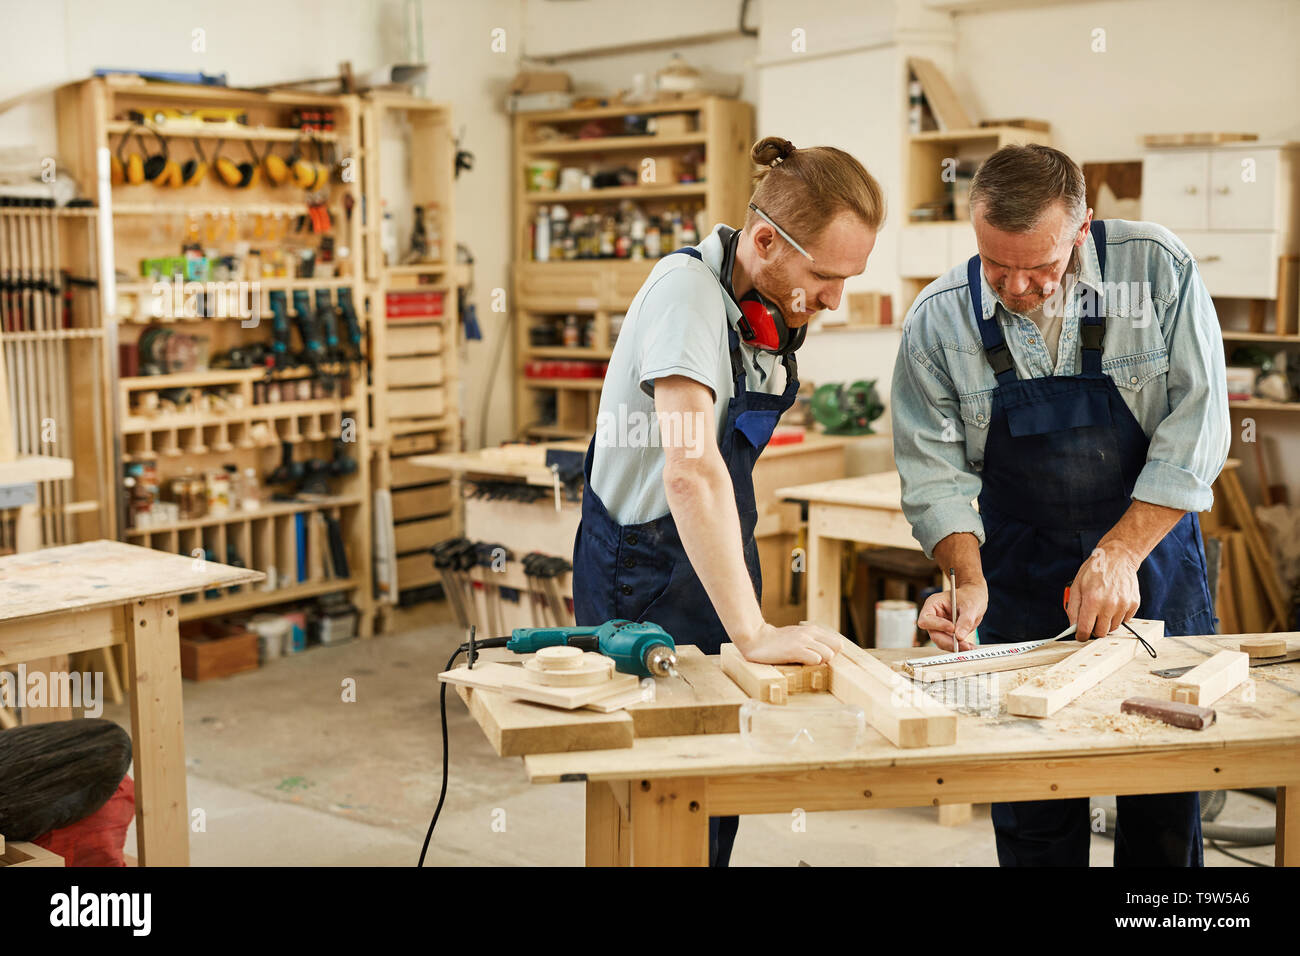 Portrait of two carpenters working with wood standing at table in workshop, copy space - Stock Image